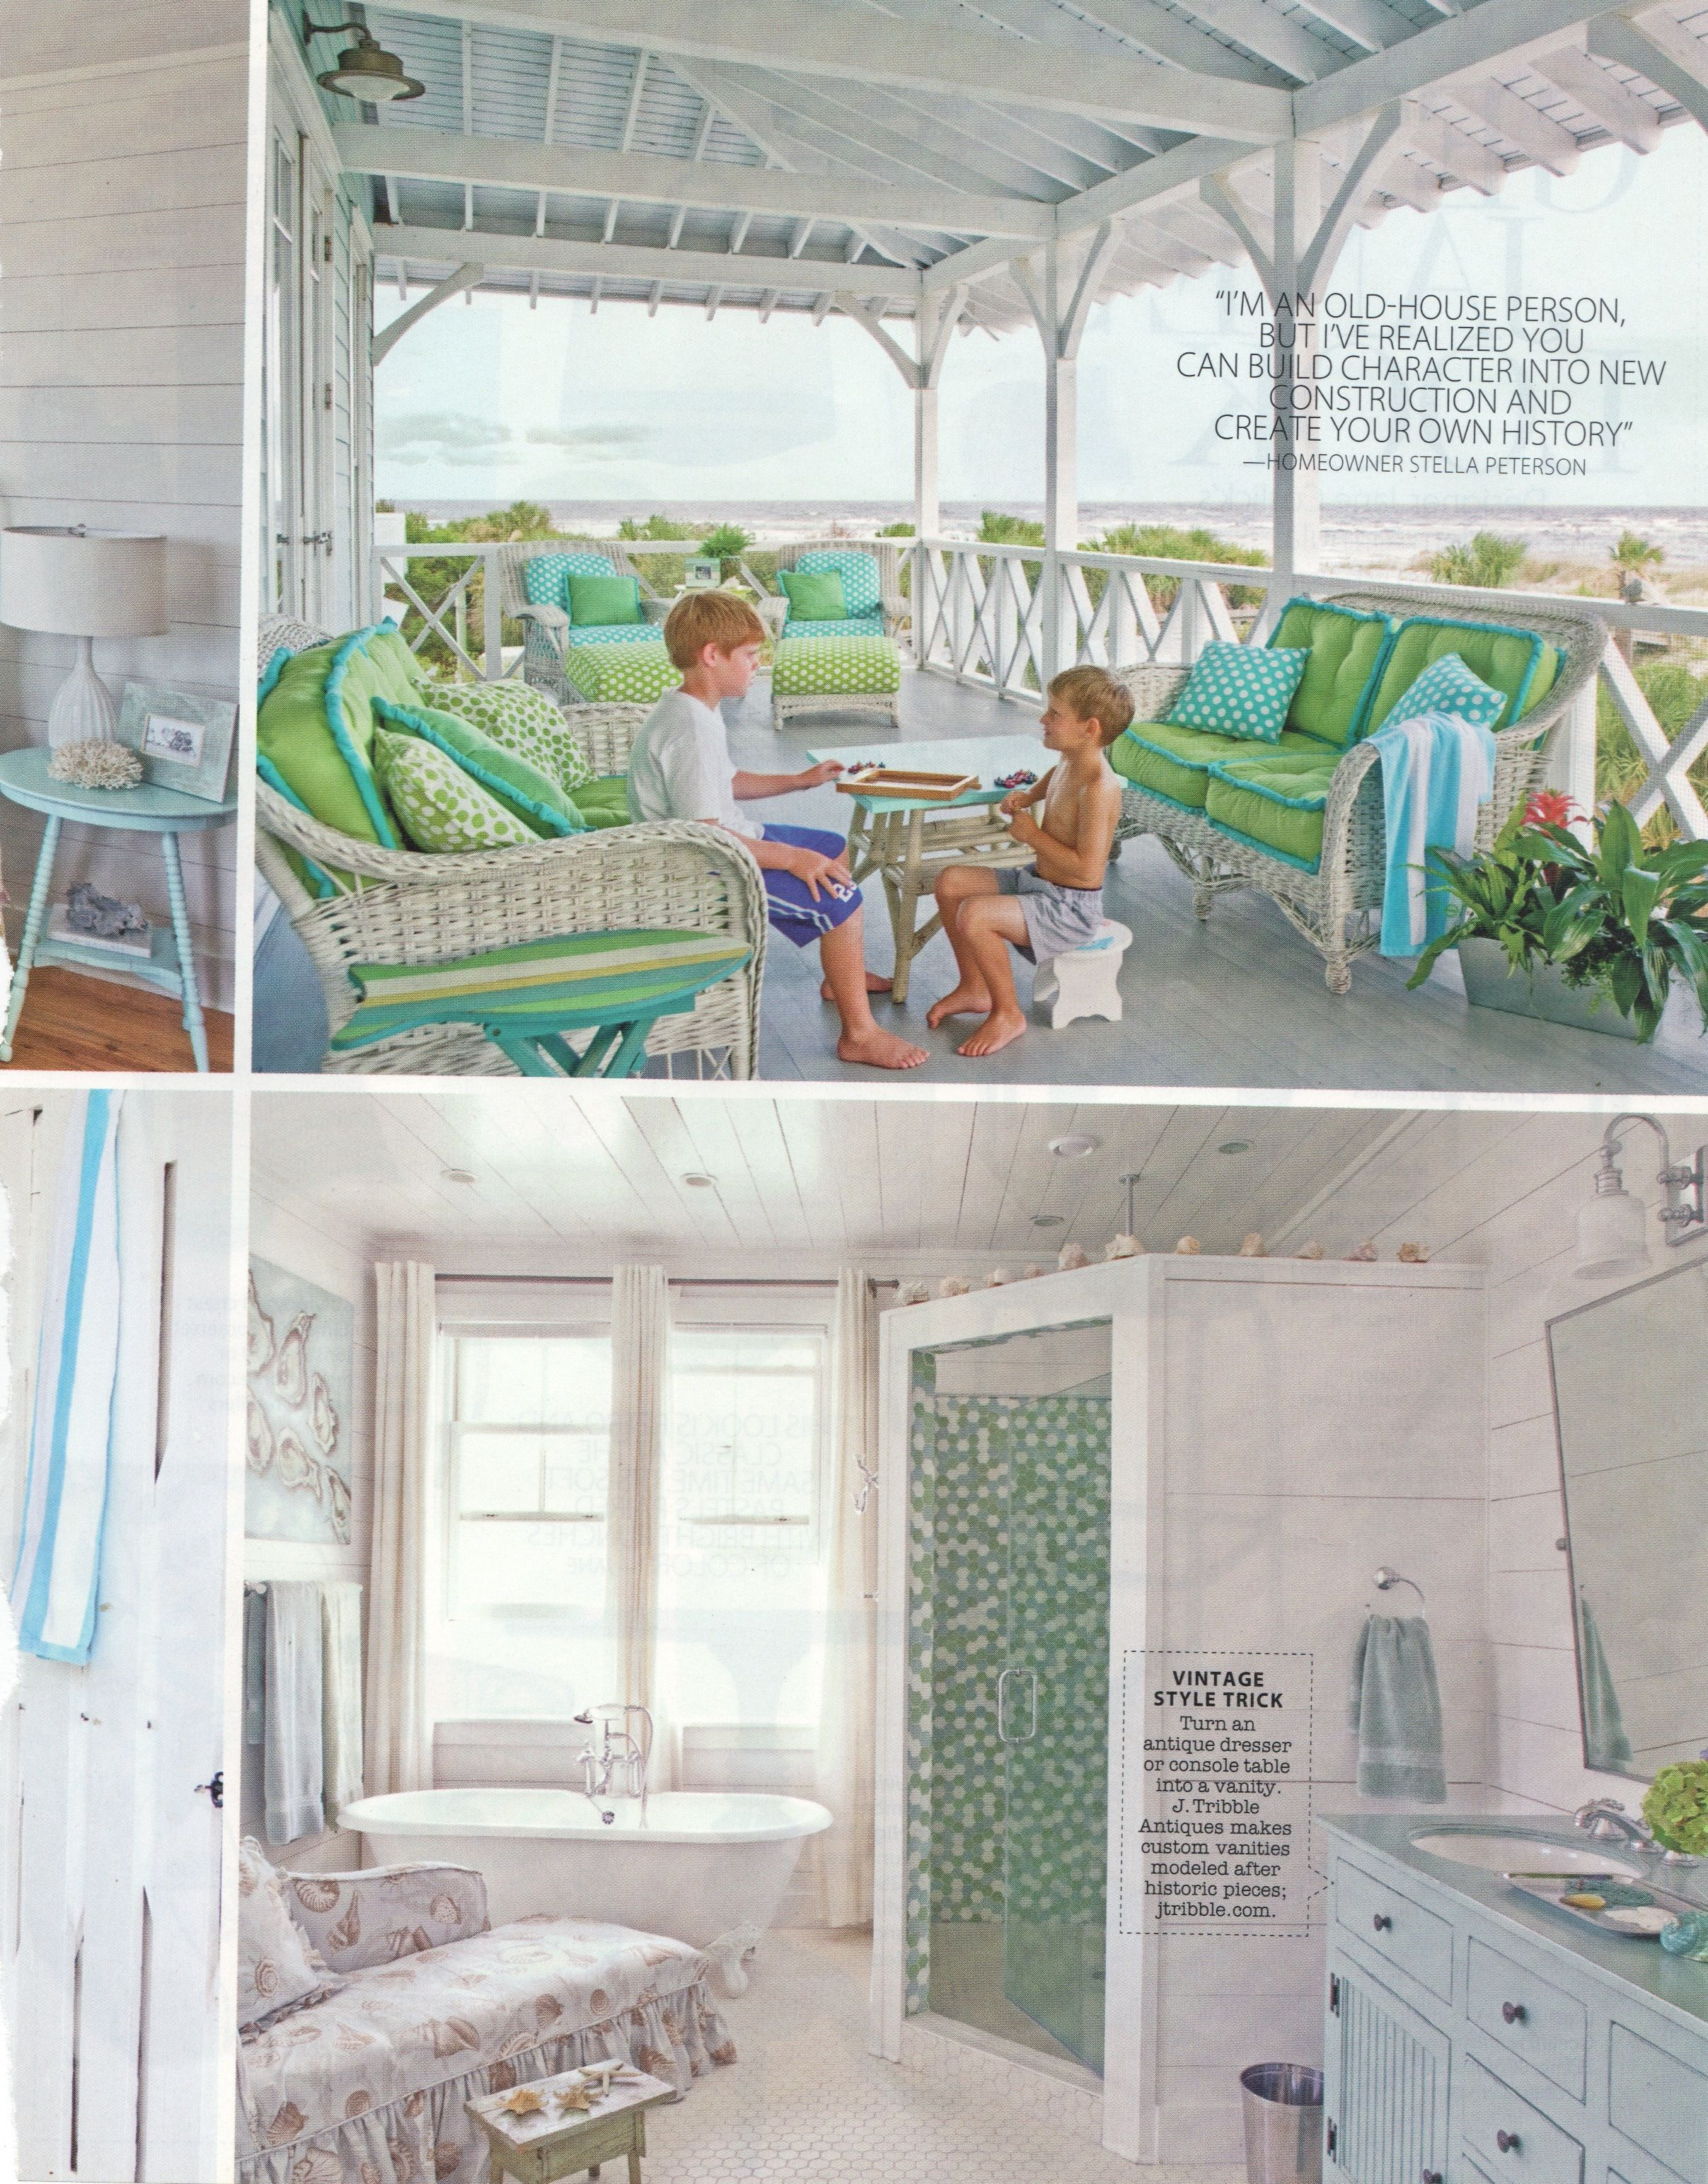 Love the colors in porch furniture, shower style & tiles in shower, also blue vanity is cool